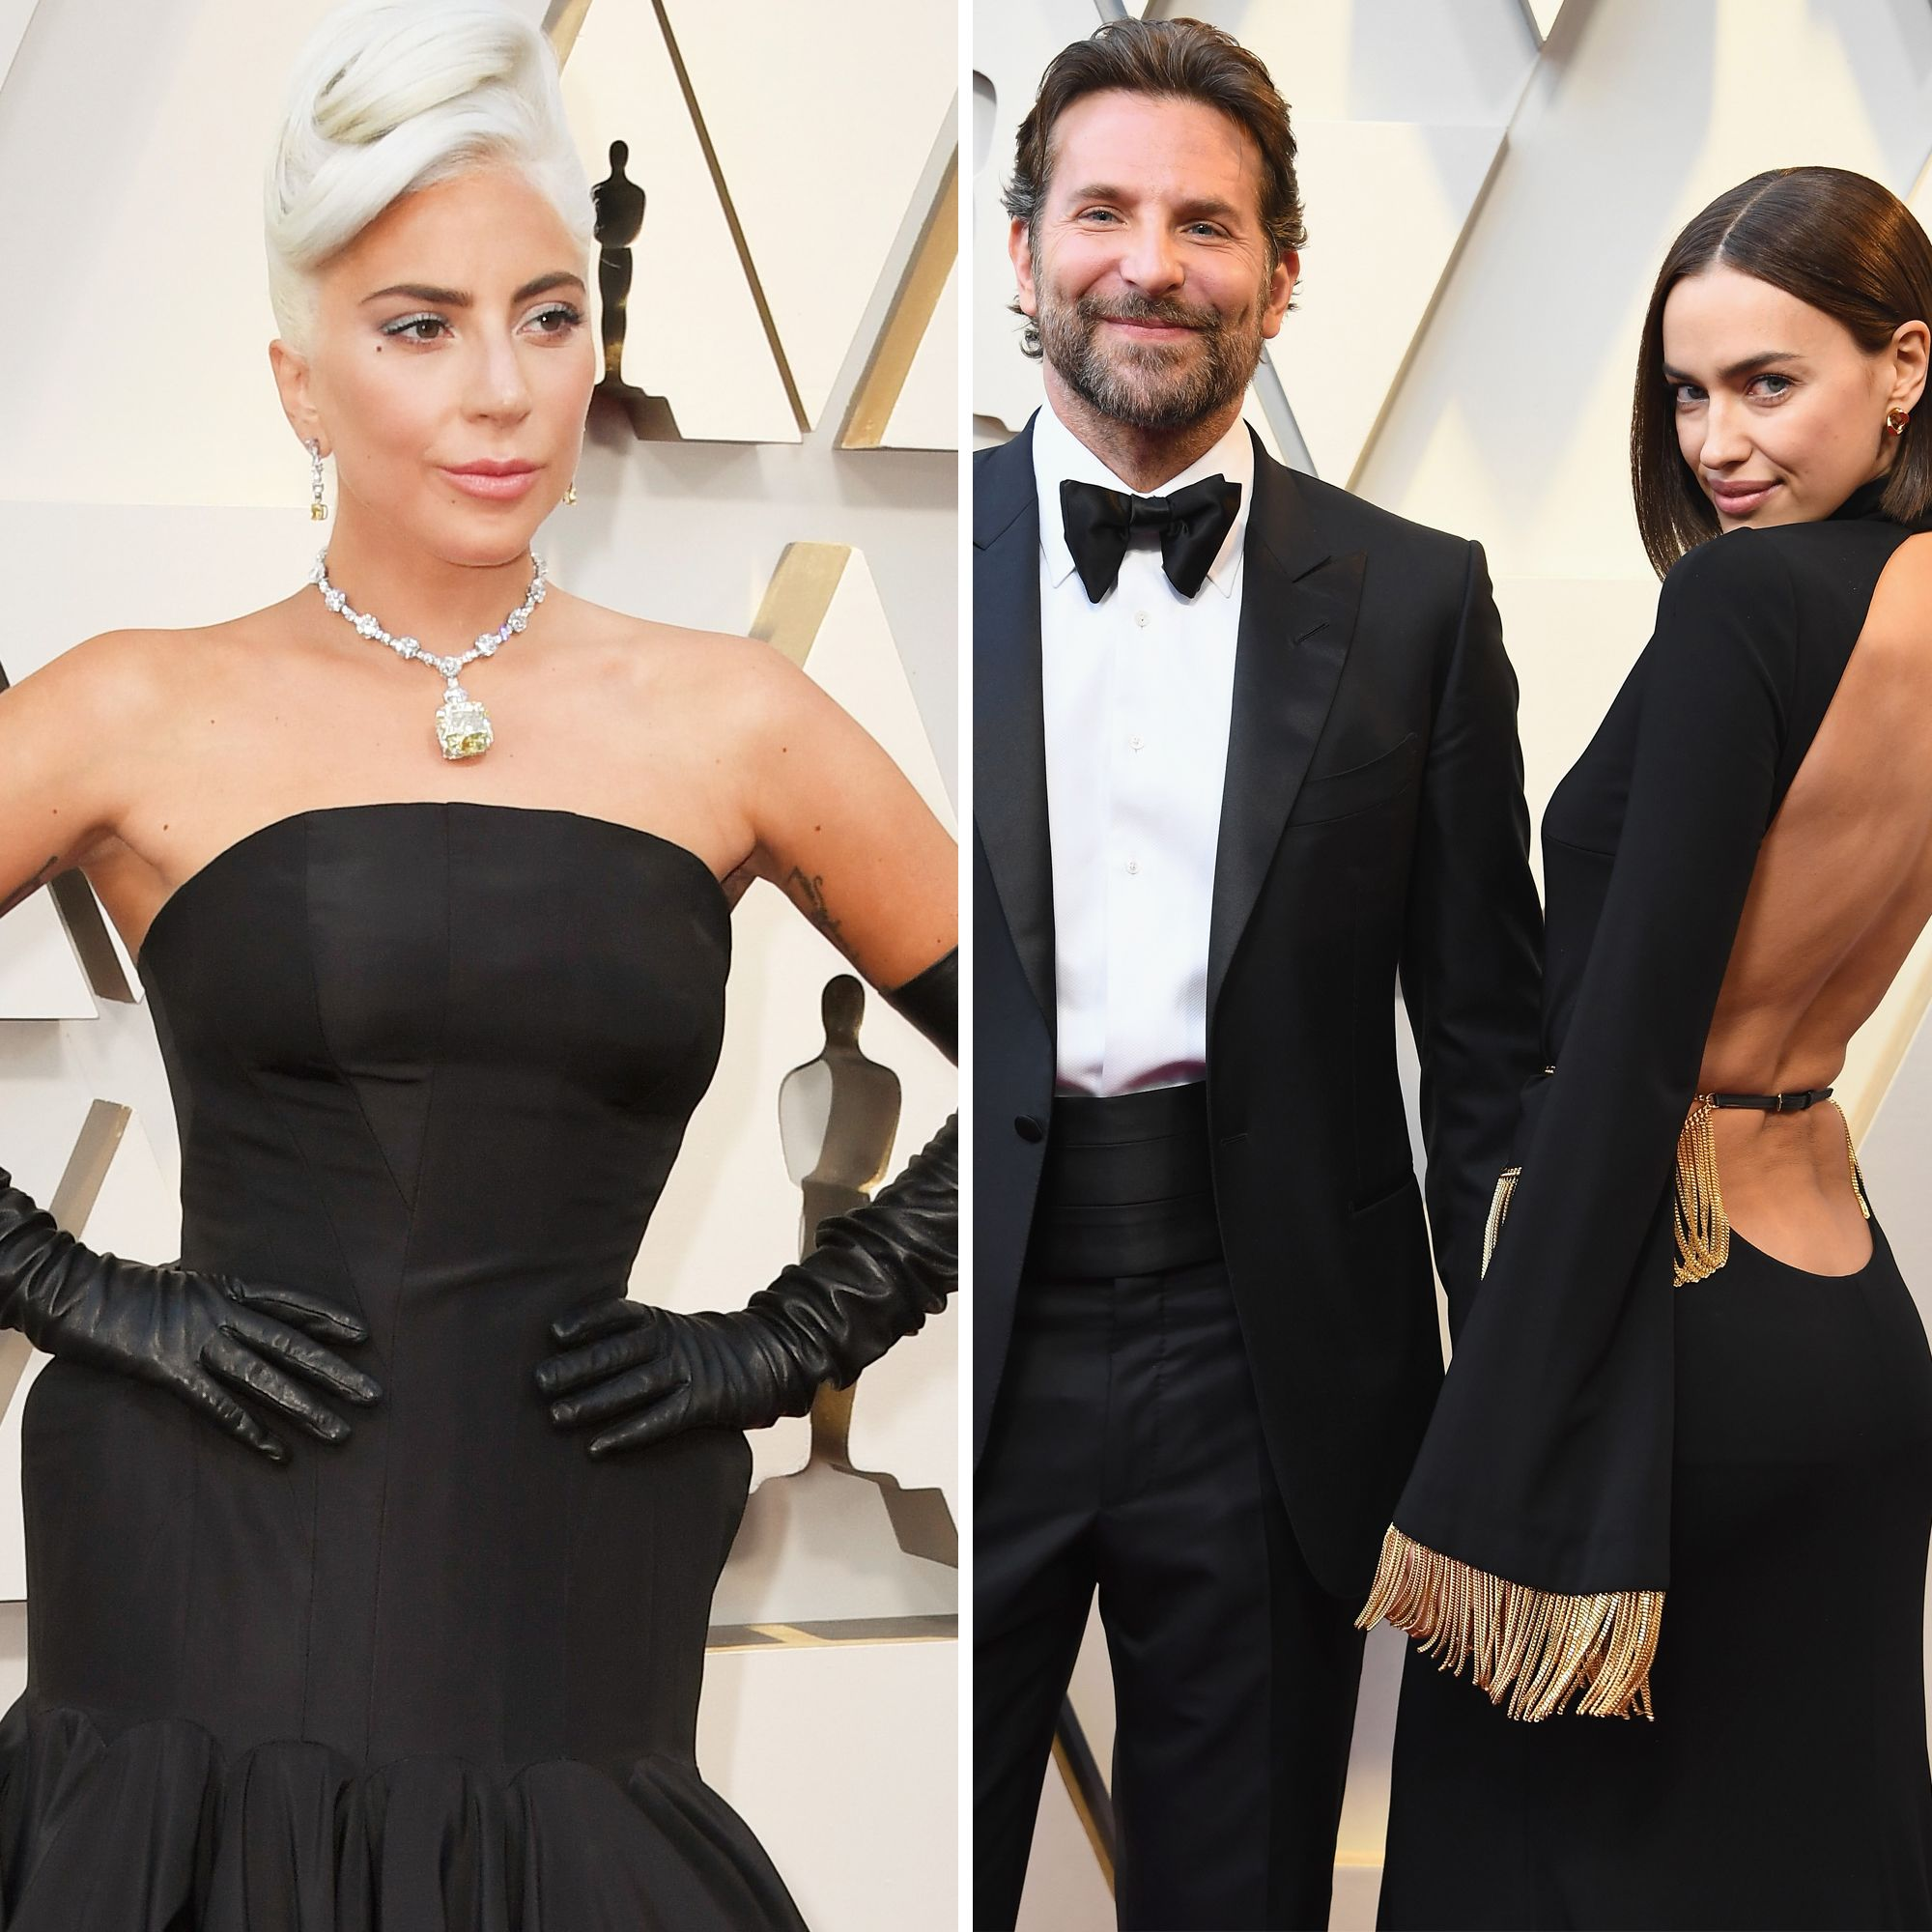 Irina Shayk Sat Between Bradley Cooper and Lady Gaga at the Oscars and the Internet Is Dying